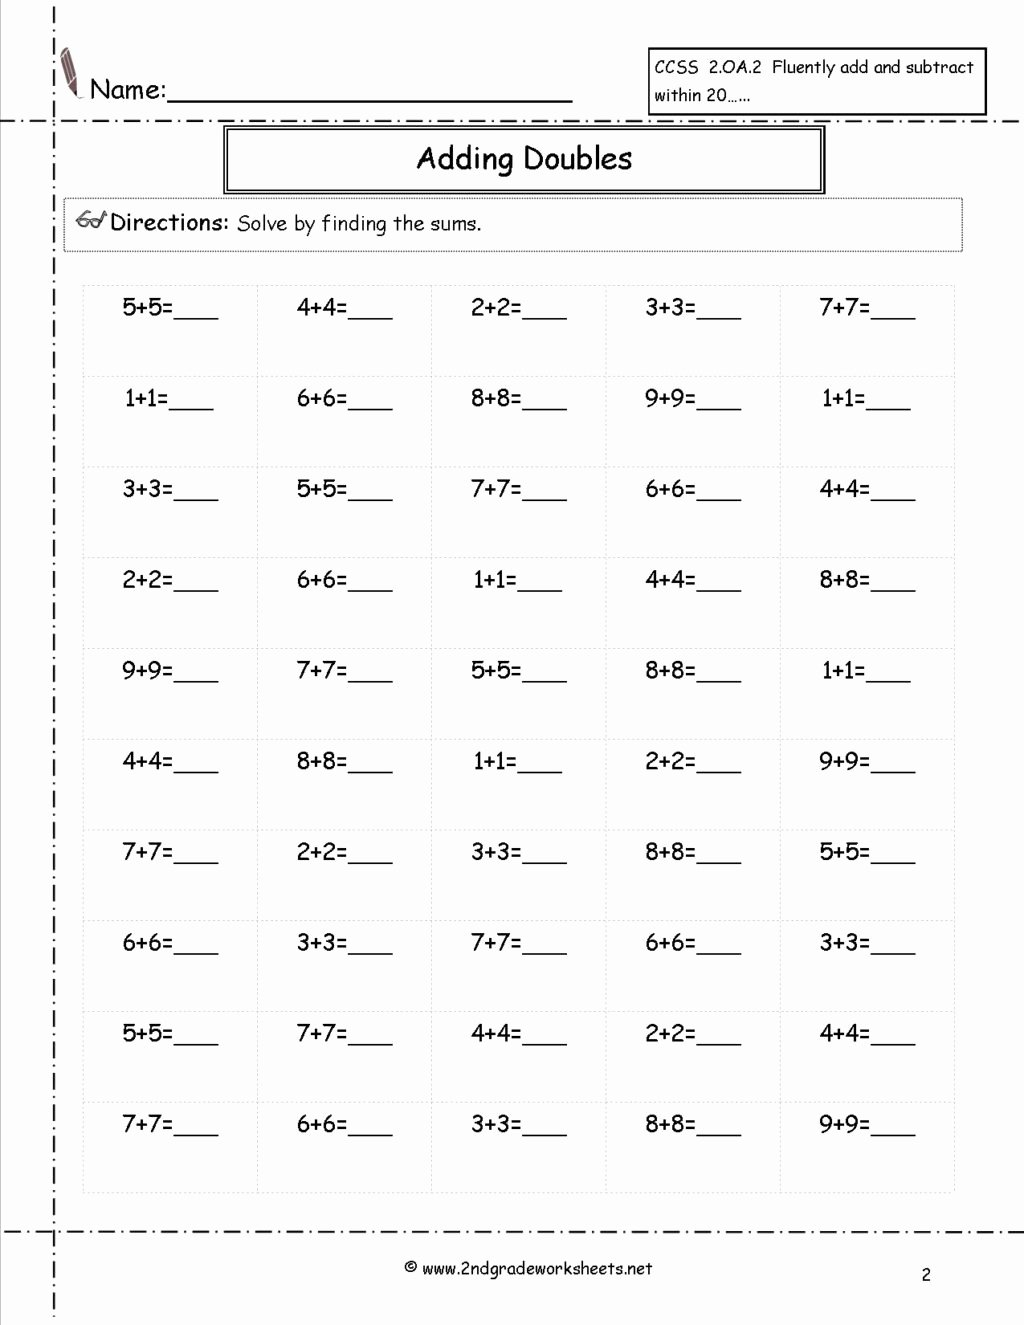 Multiplication Worksheets Generator Fresh Worksheet Doubles50 Free Math Worksheets and Printouts